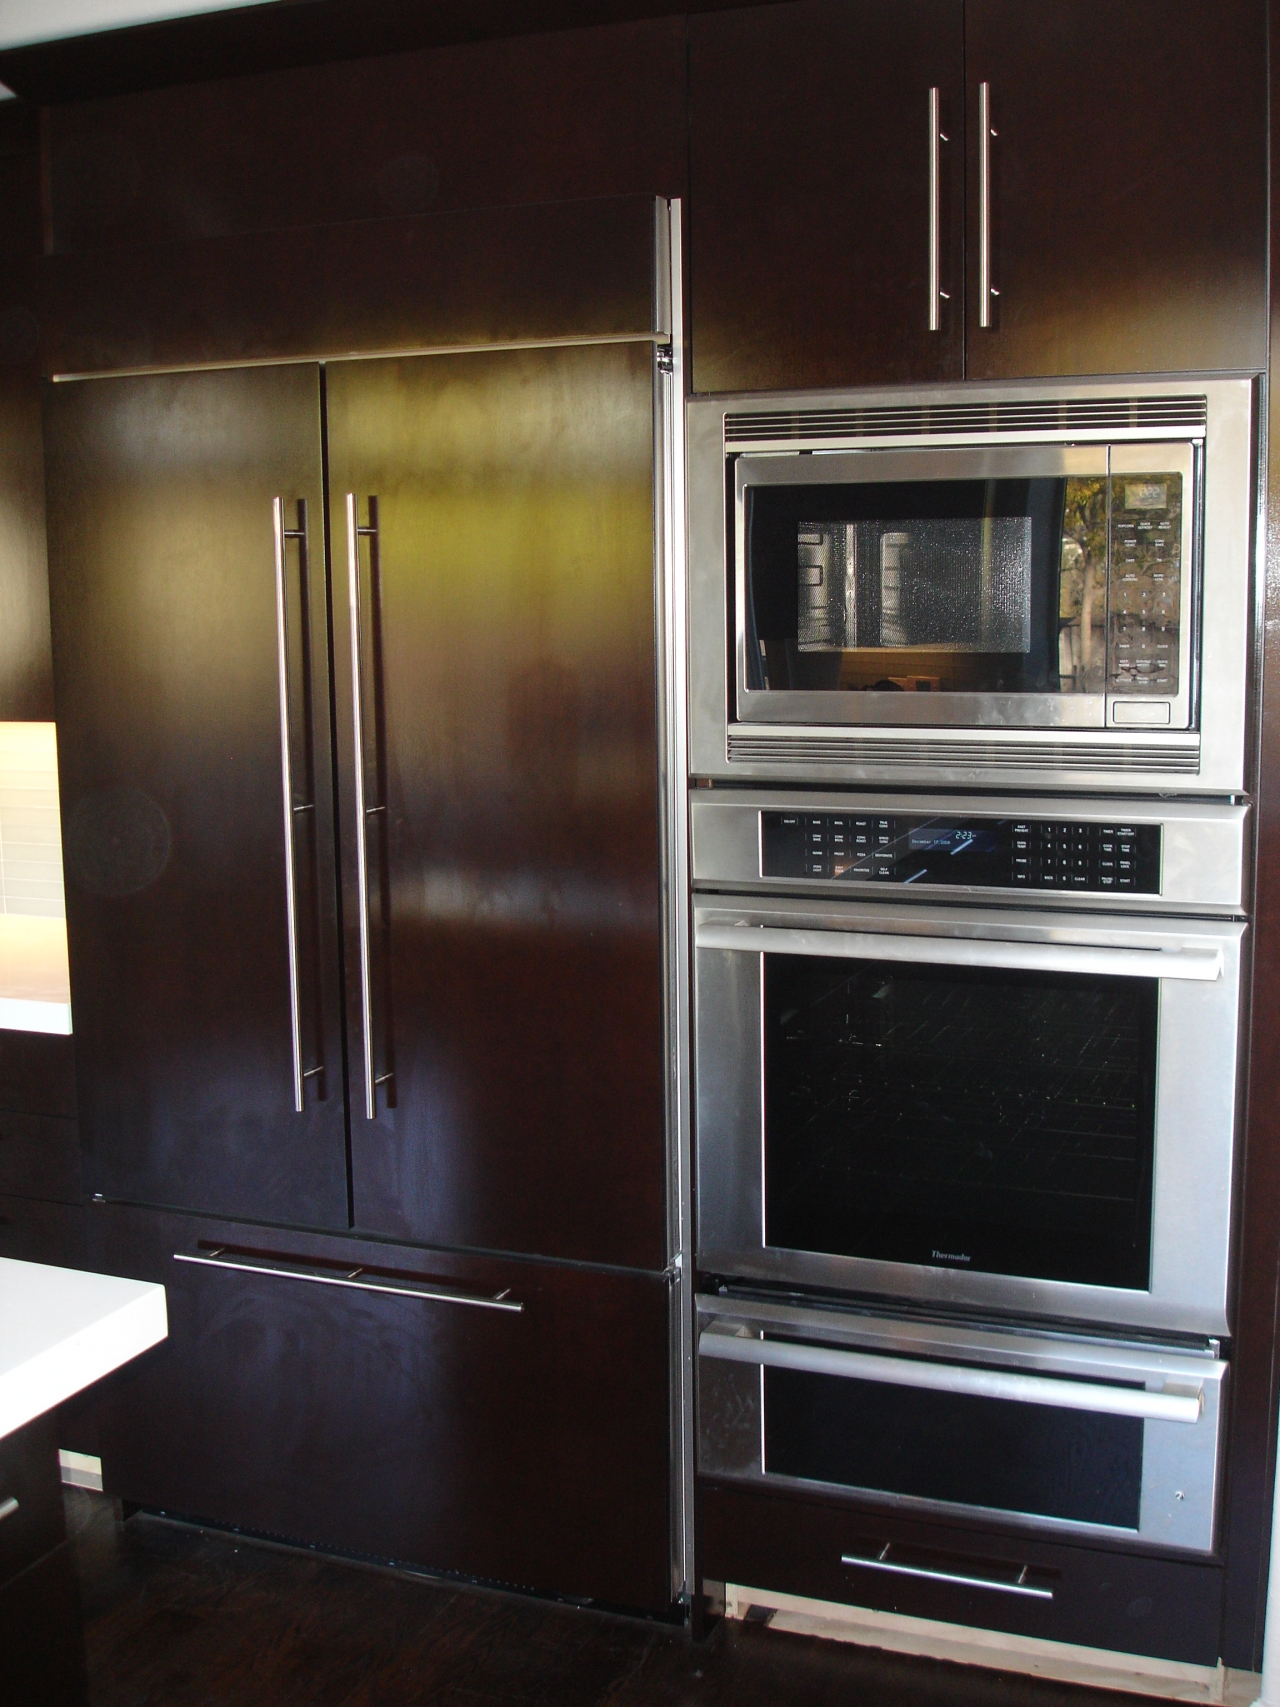 Uncategorized Contra Costa Appliance And Kitchen Center custom cabinets john tanner general building refrigerator doors with oversized pulls kitchen remodel